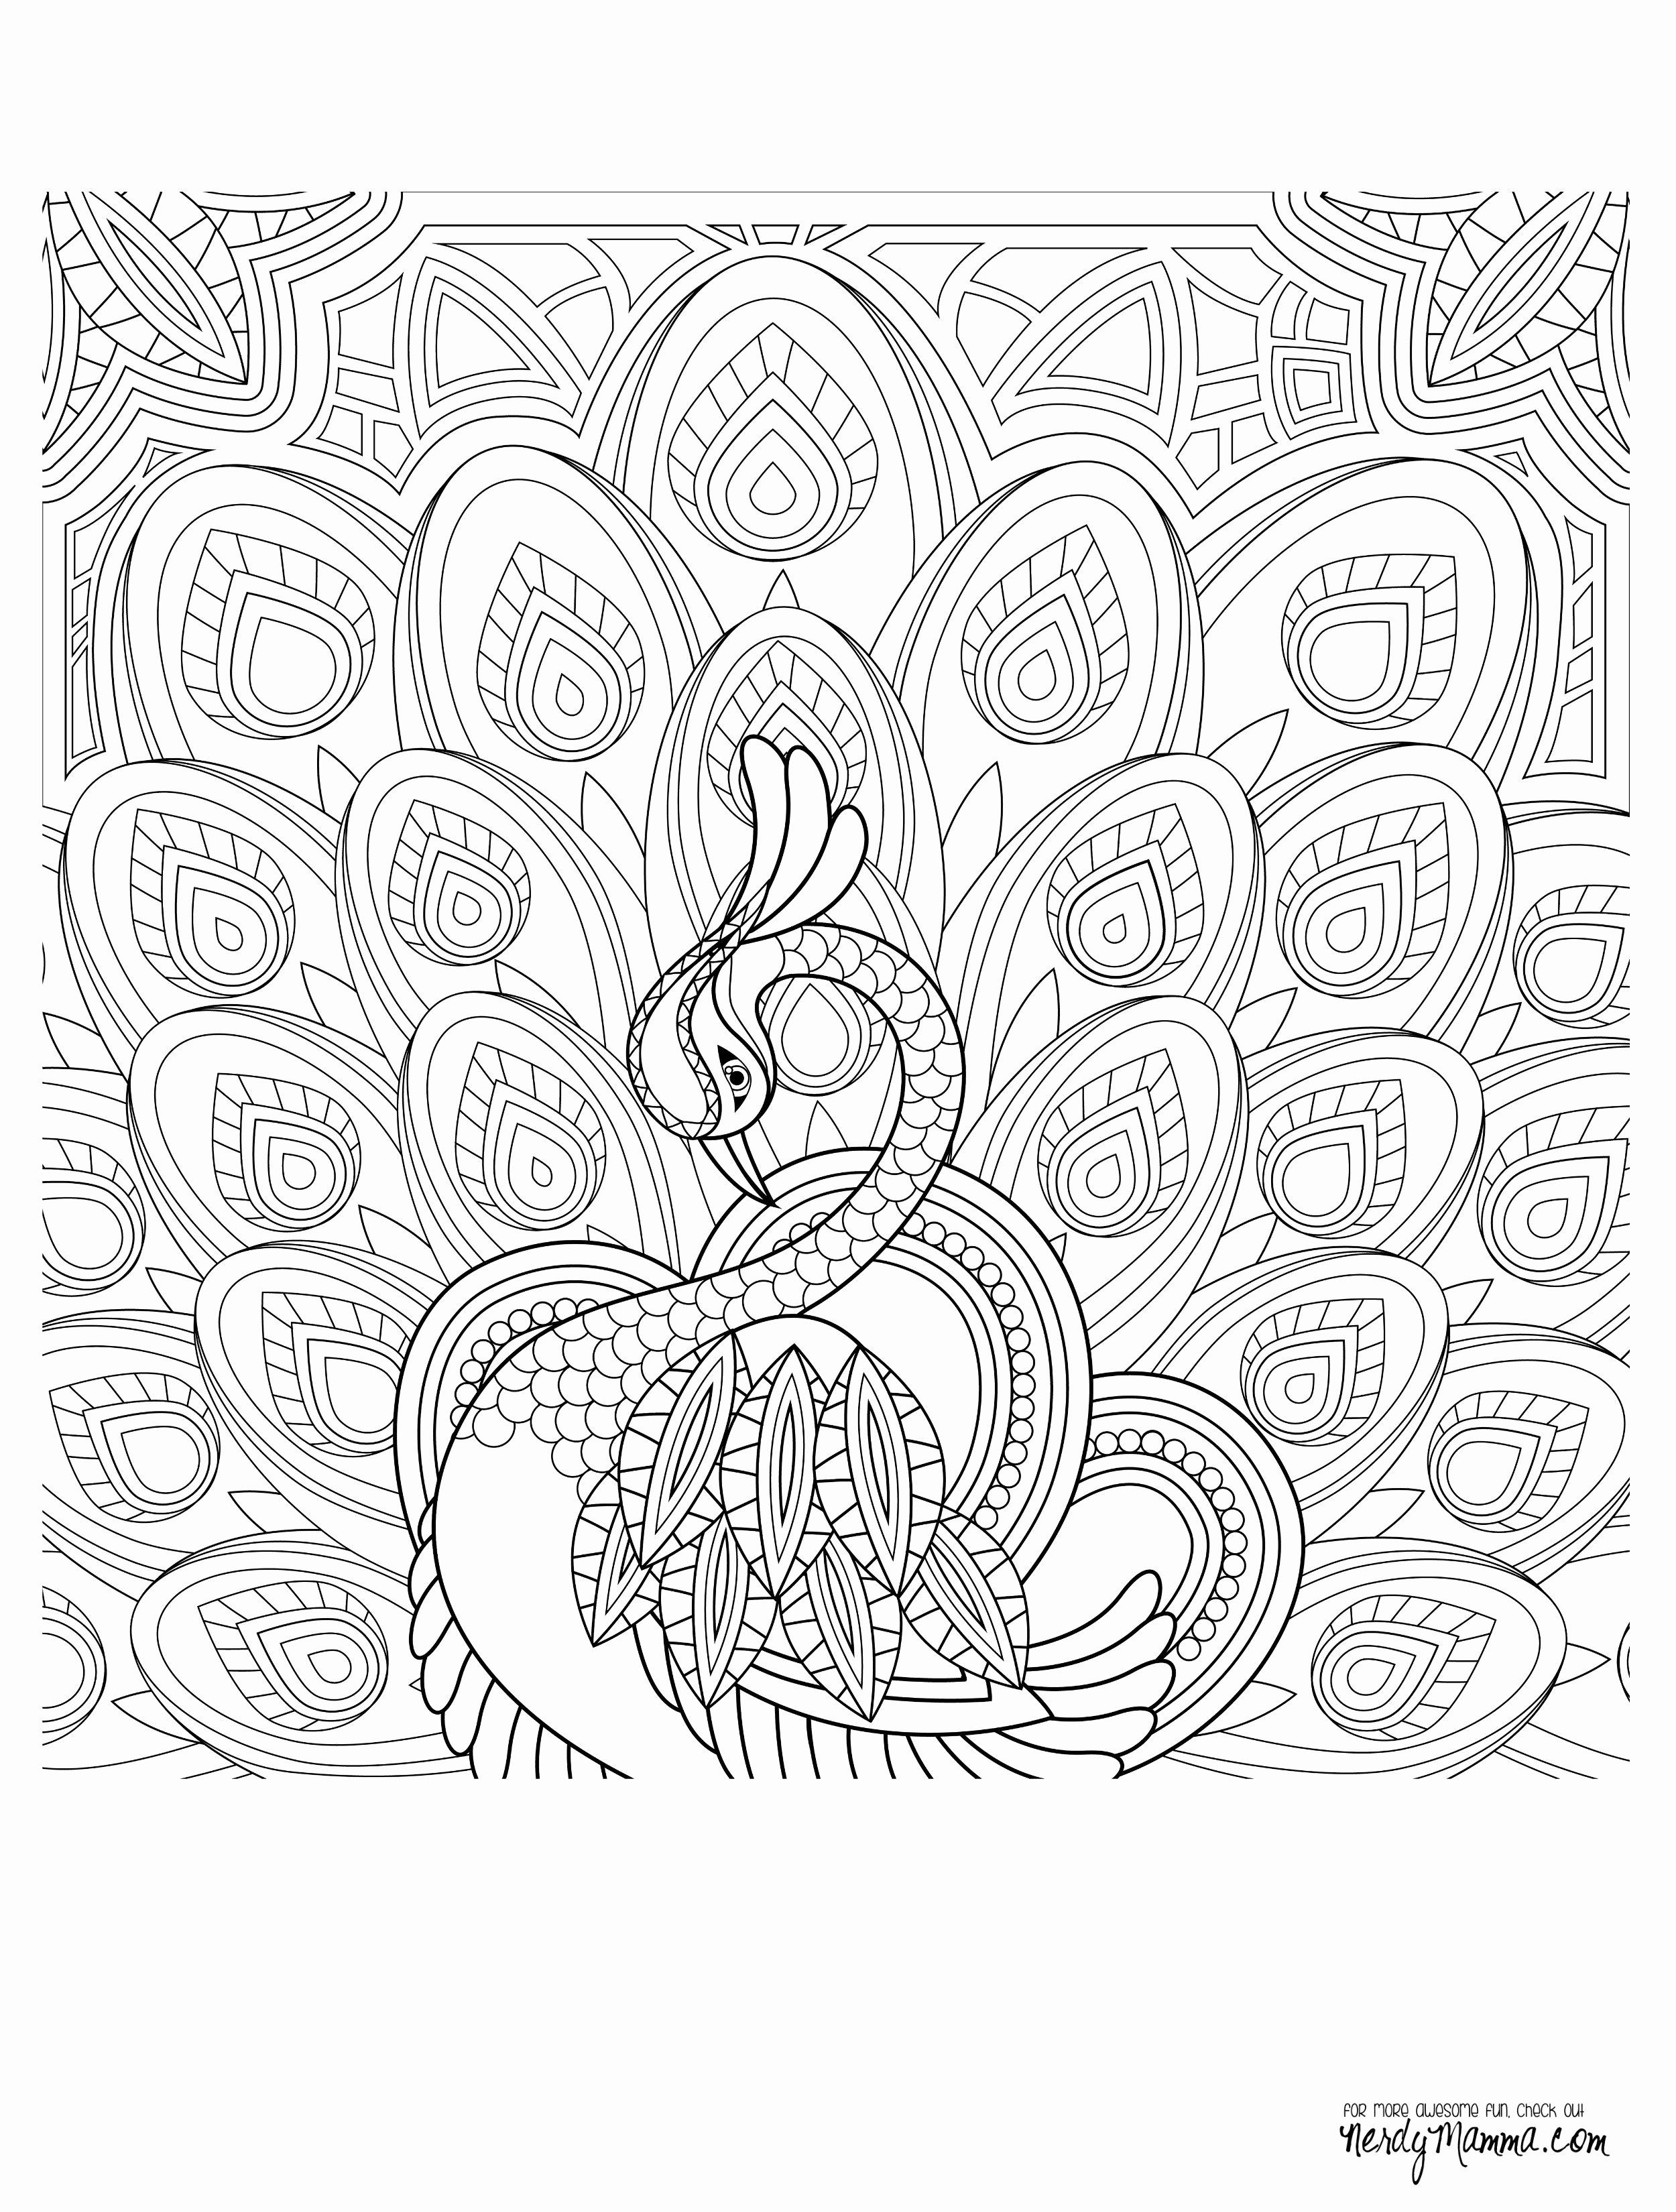 free printable kindergarten coloring pages Download-Free Printable Coloring Pages For Adults Best Awesome Coloring Page For Adult Od Kids Simple Floral Heart With 14-p